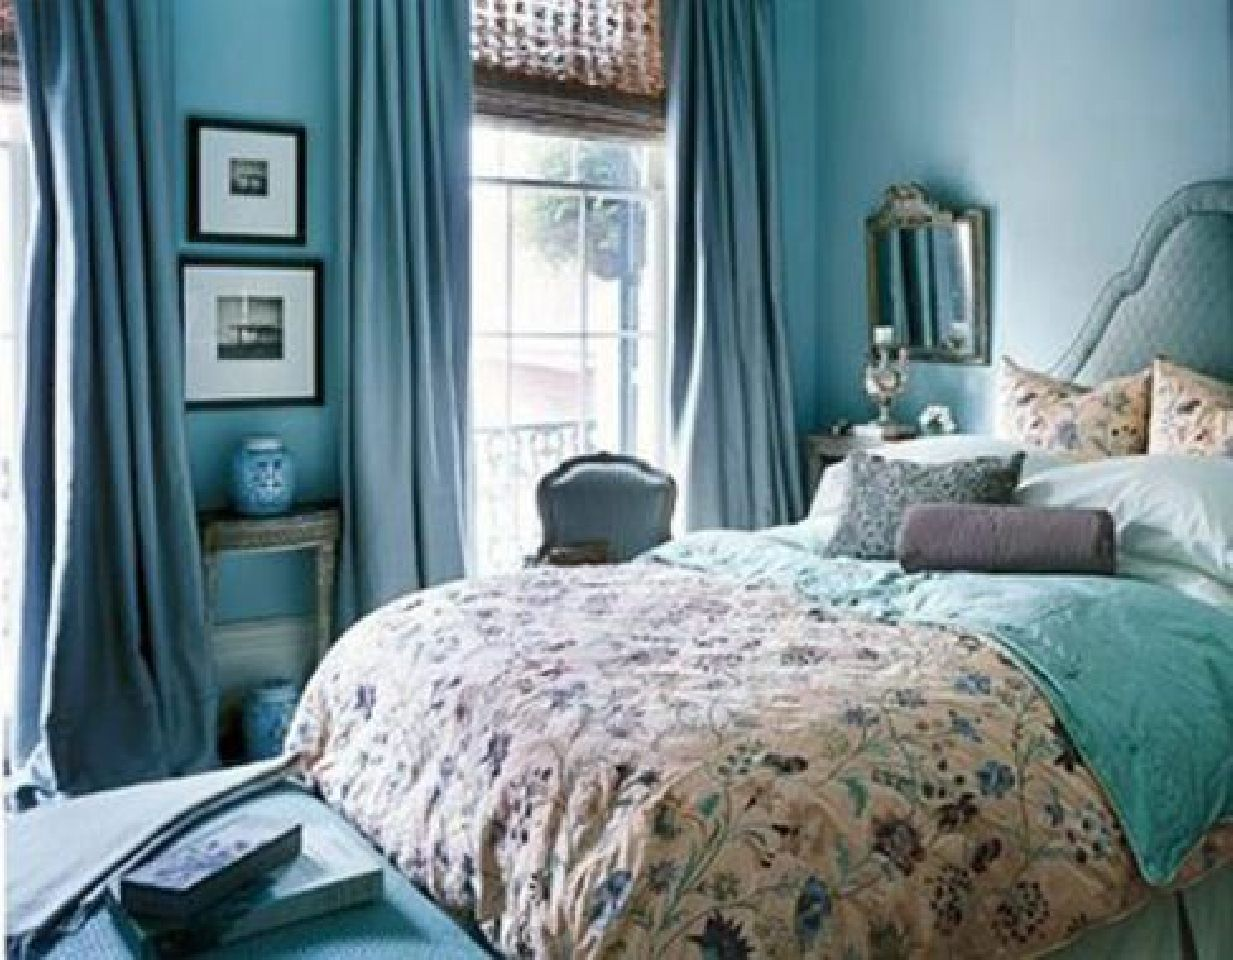 interior design ideas bedroom blue 1000 images about bedroom ideas on pinterest bedrooms blue and - Bedroom Designs Blue